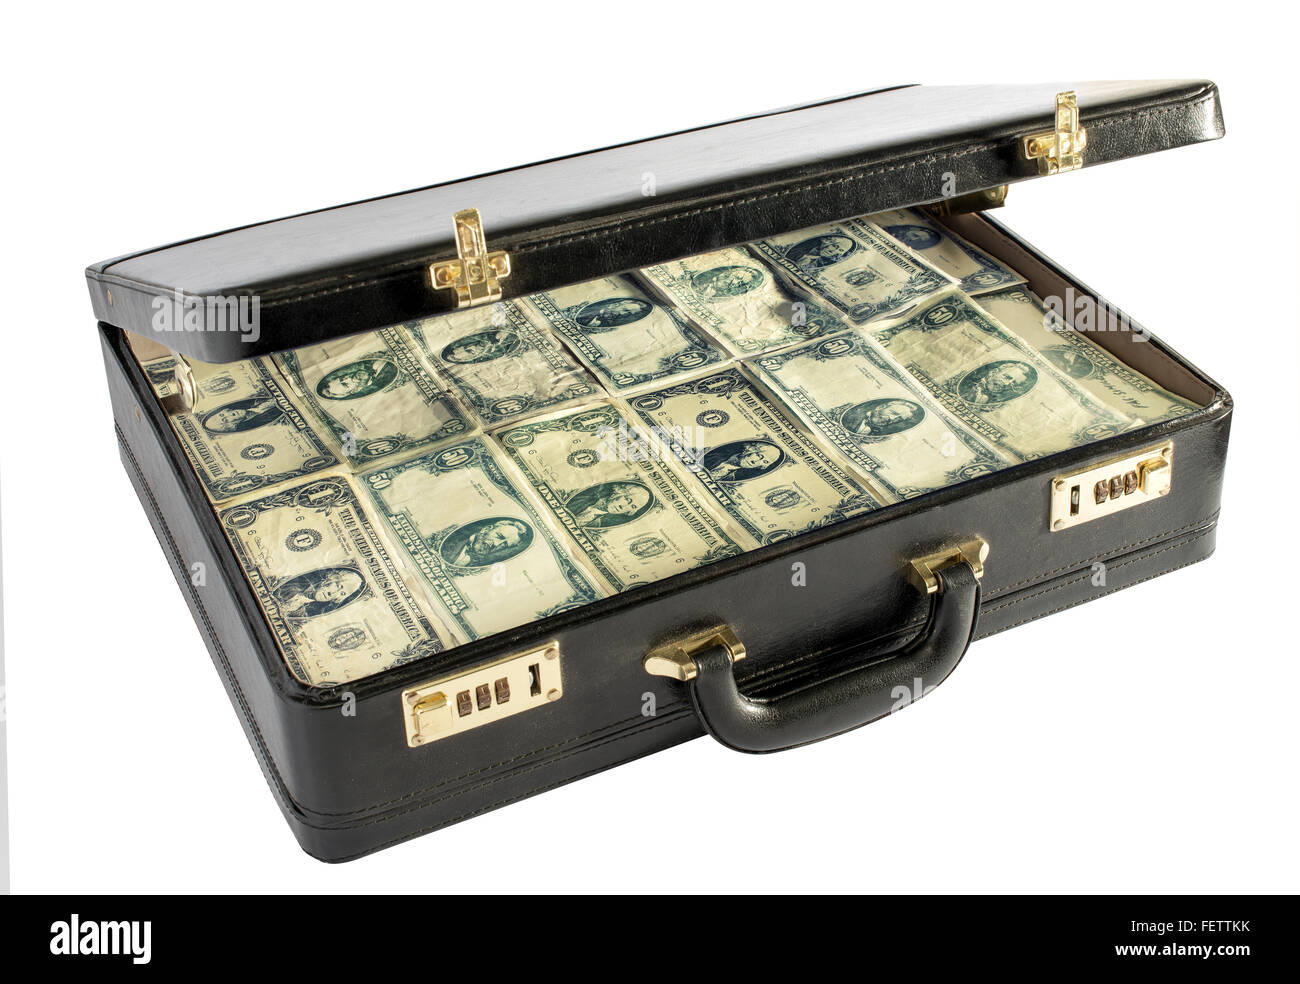 Black leather briefcase packed with money with the lid raised to show stacks of dollar bills - Stock Image